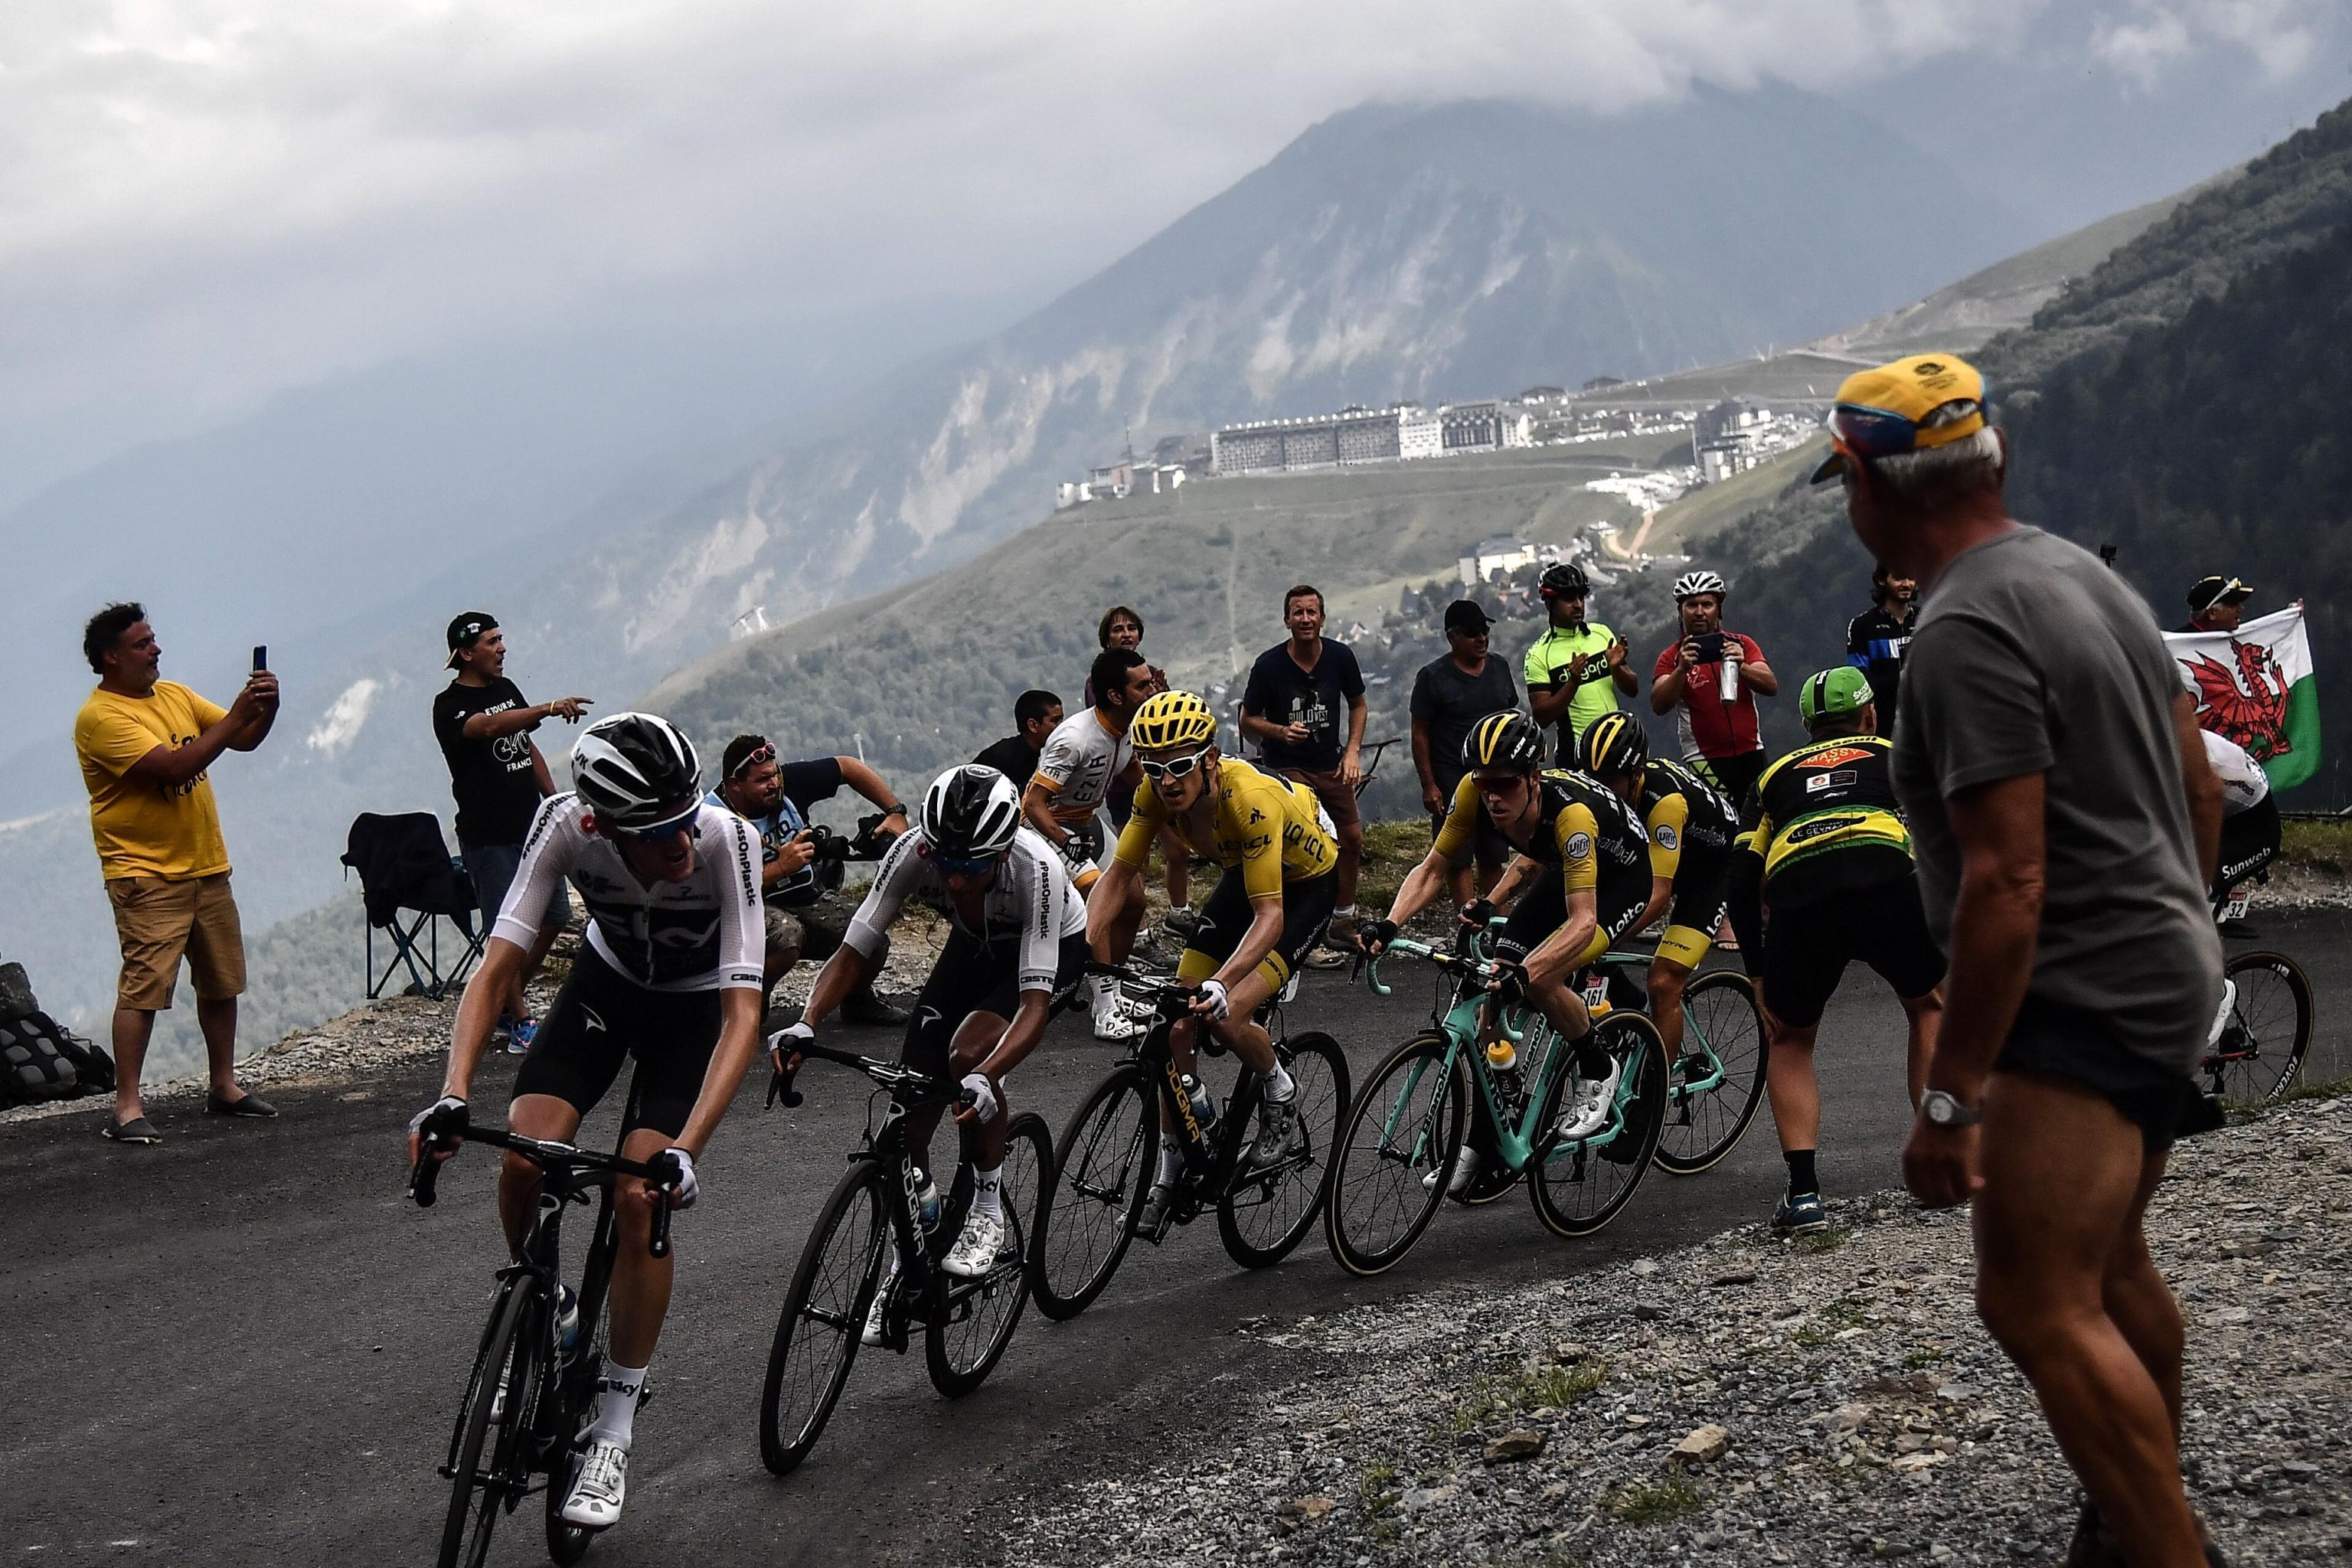 Tour De France 2018 Primoz Roglic Wins Stage 19 Moves Into Overall Top 3 Bleacher Report Latest News Videos And Highlights